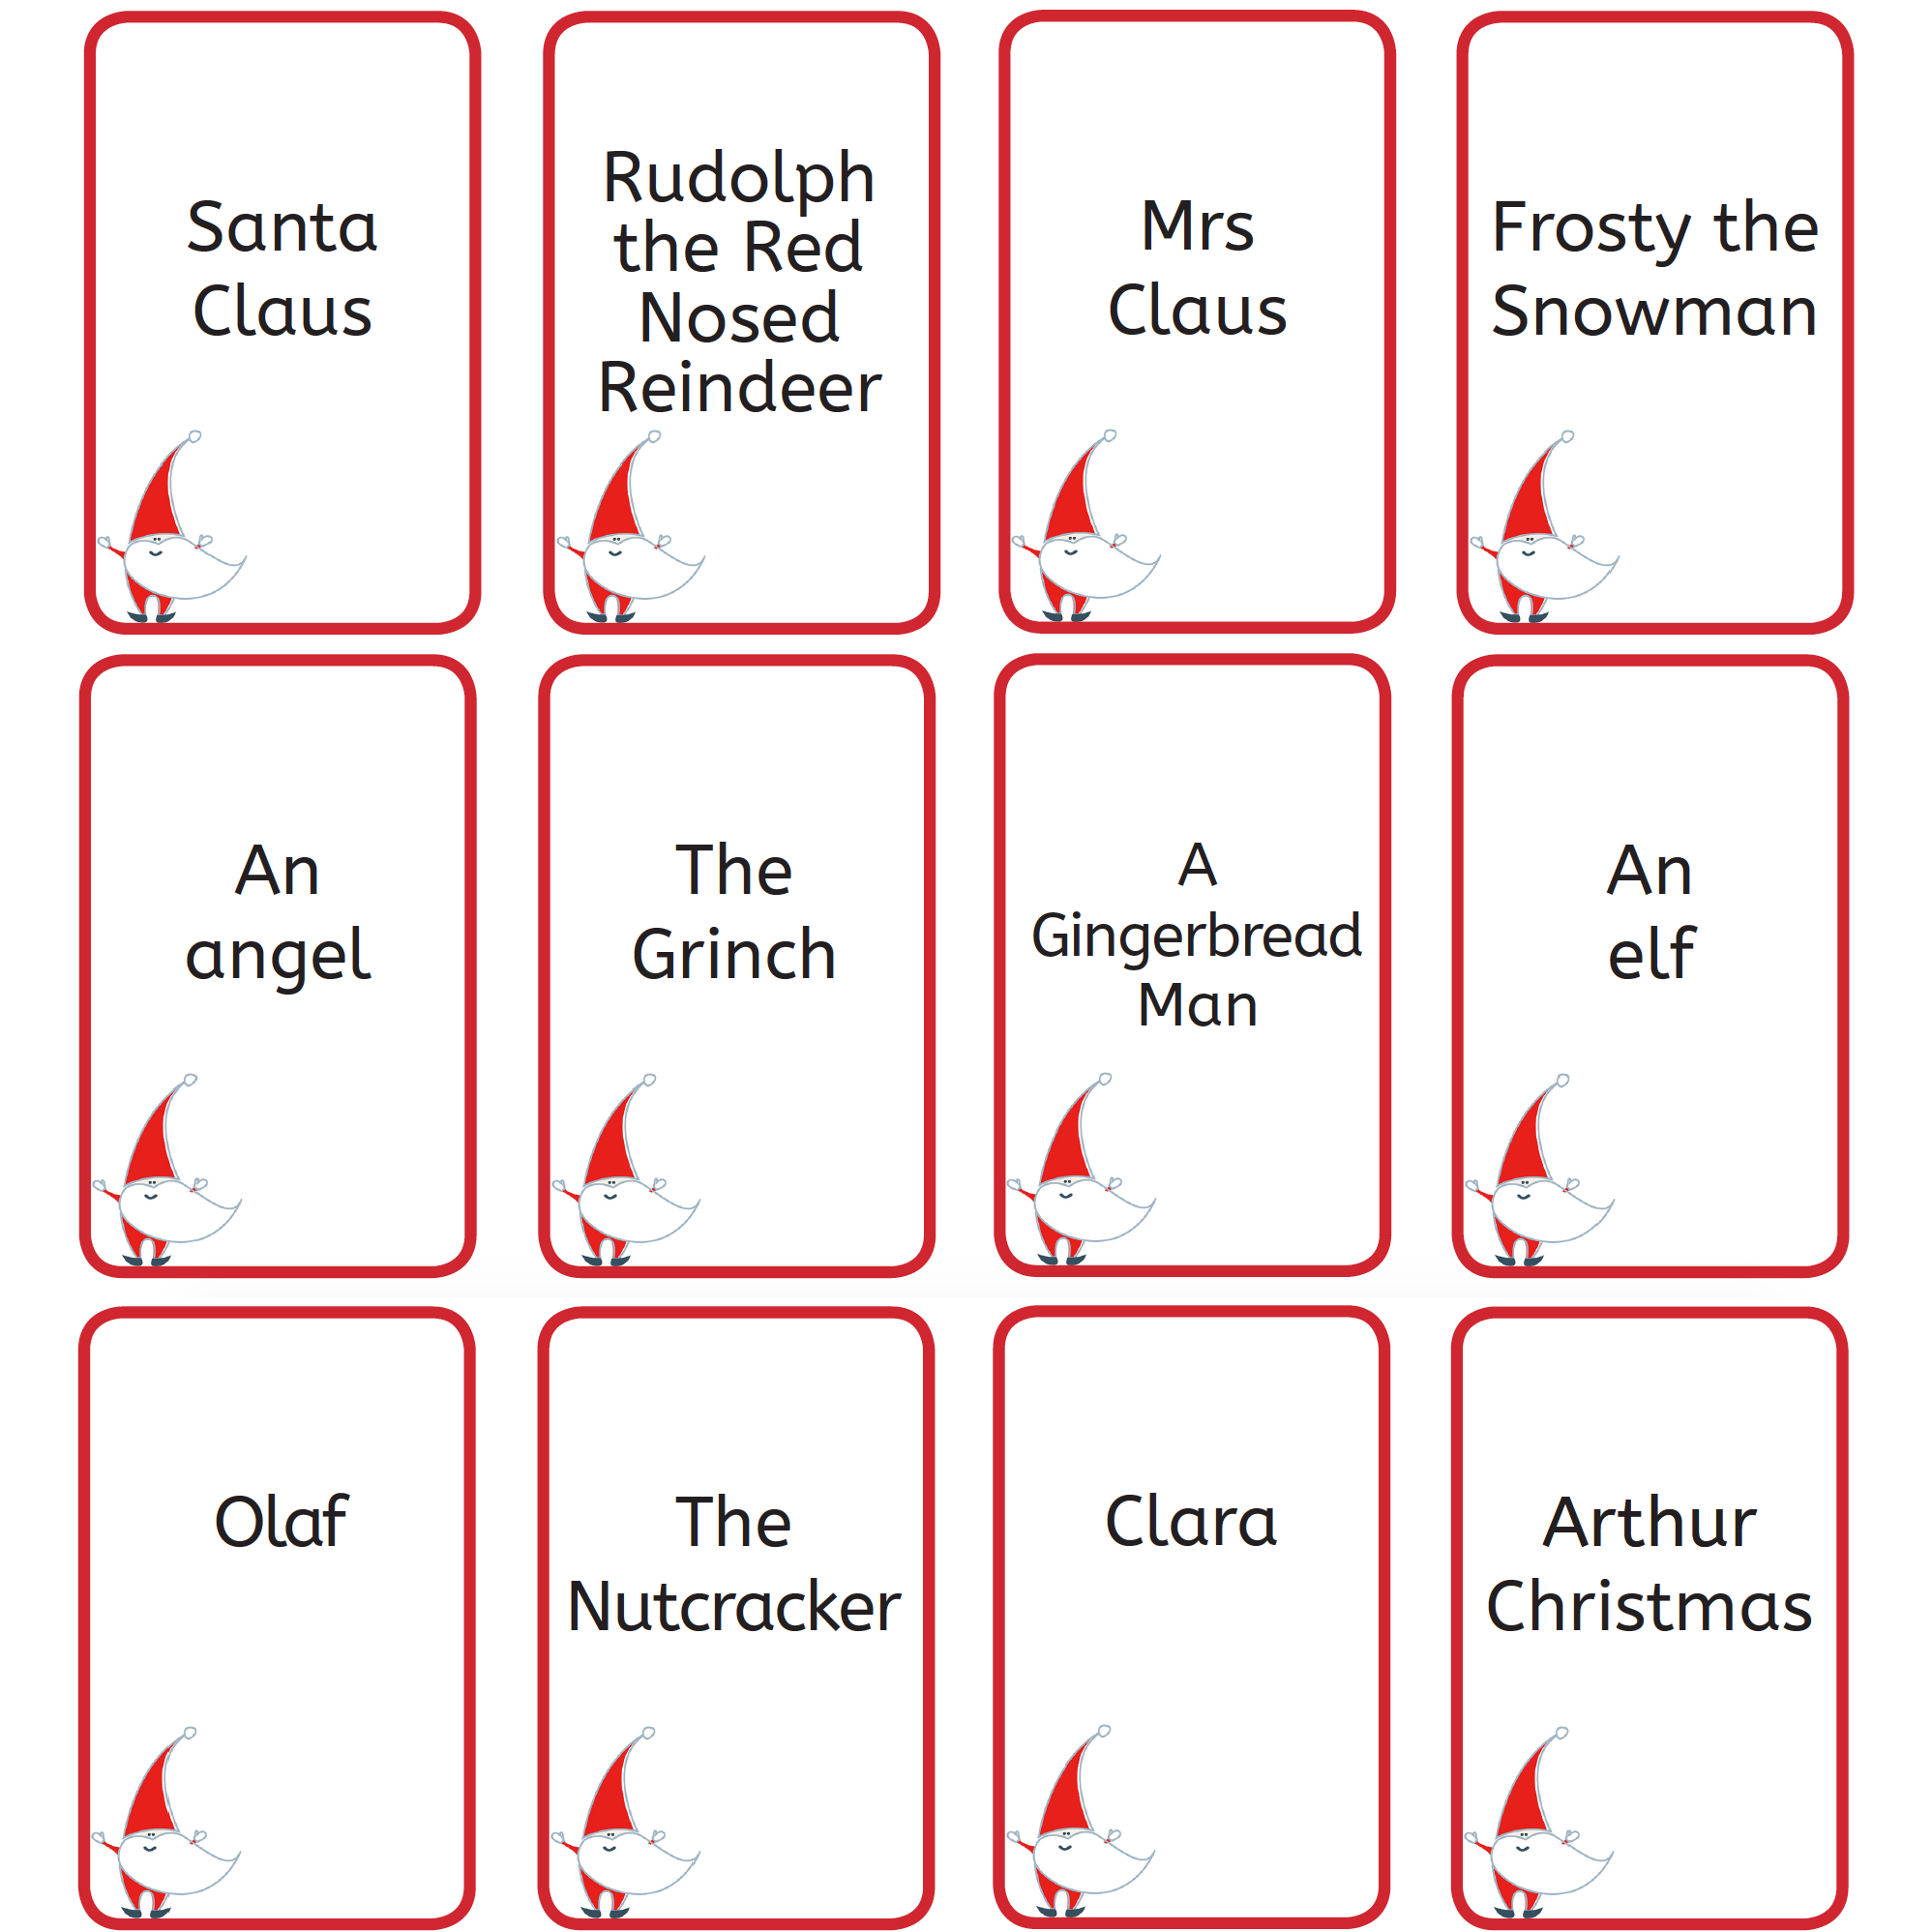 photo regarding Printable Christmas Games With Answers identify Cost-free Printable Xmas Video games: Xmas Who Am I?